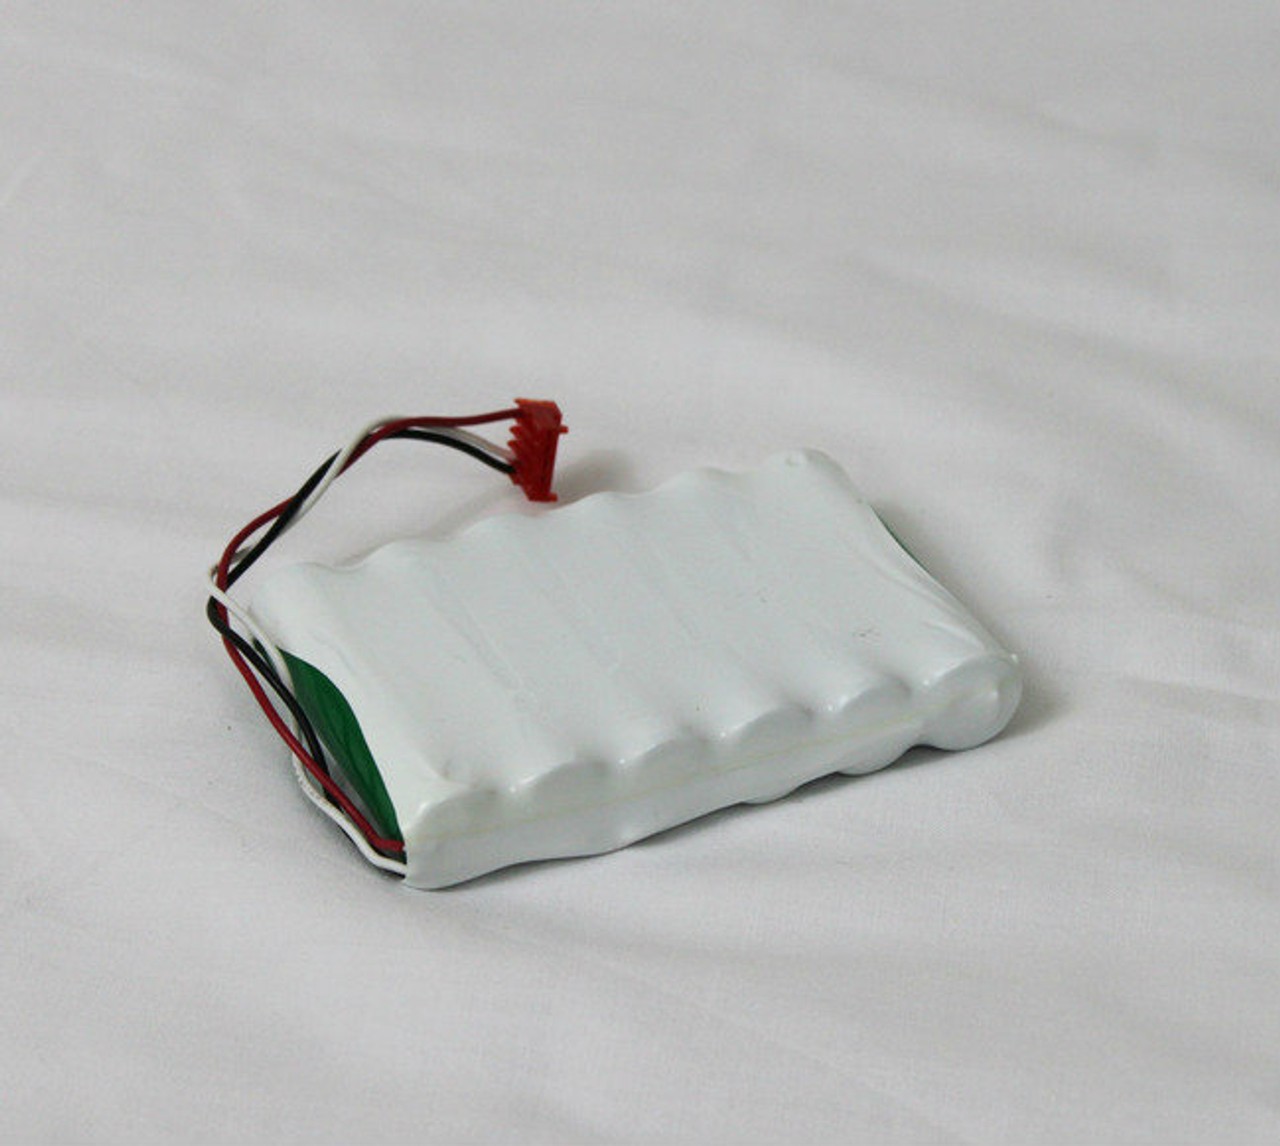 Replacement Battery Insert For CasMed 740 and 750 Monitor